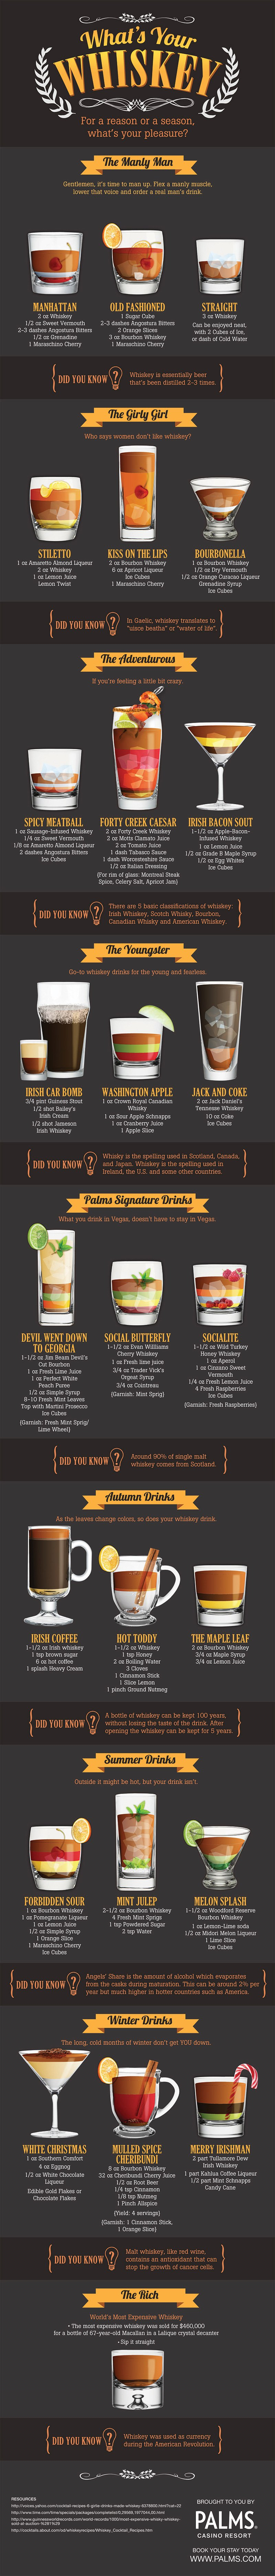 Whats_Your_Whiskey_Infographic-plaza